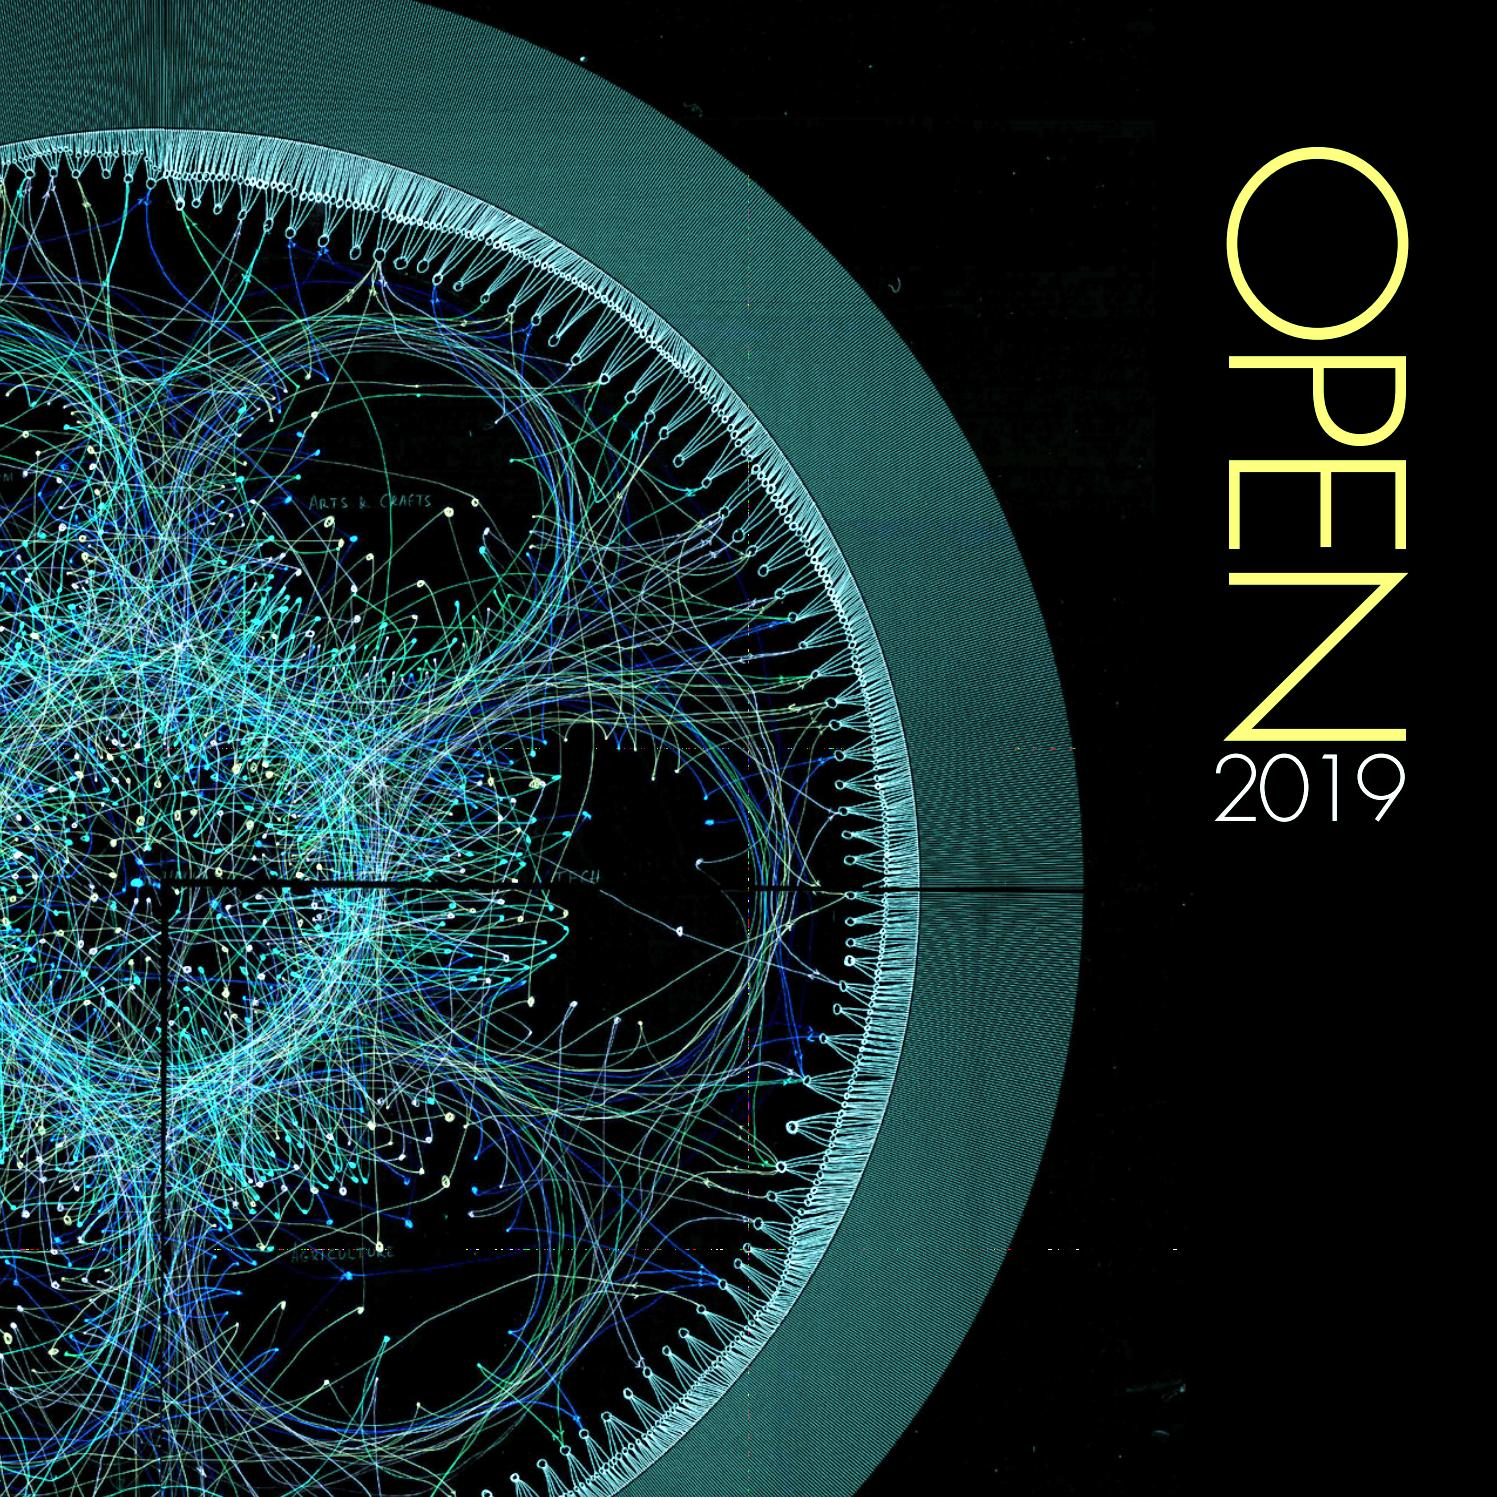 f0f3f29a028b4 OPEN 2019 by Clare Hamman - issuu